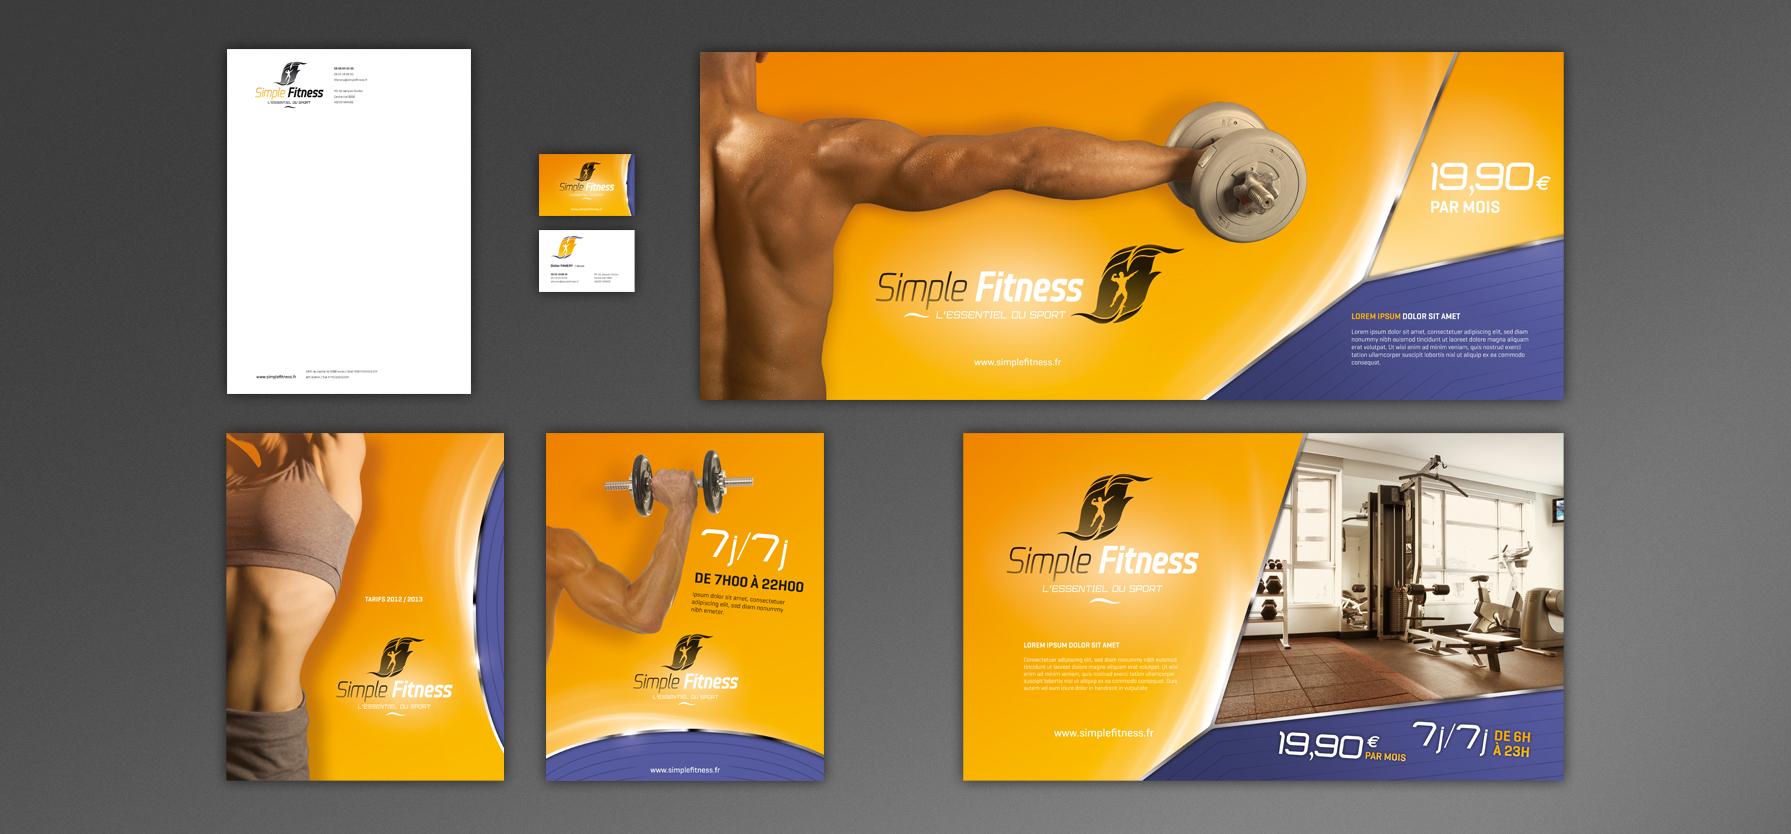 simple_fitness_identite_visuelle-02